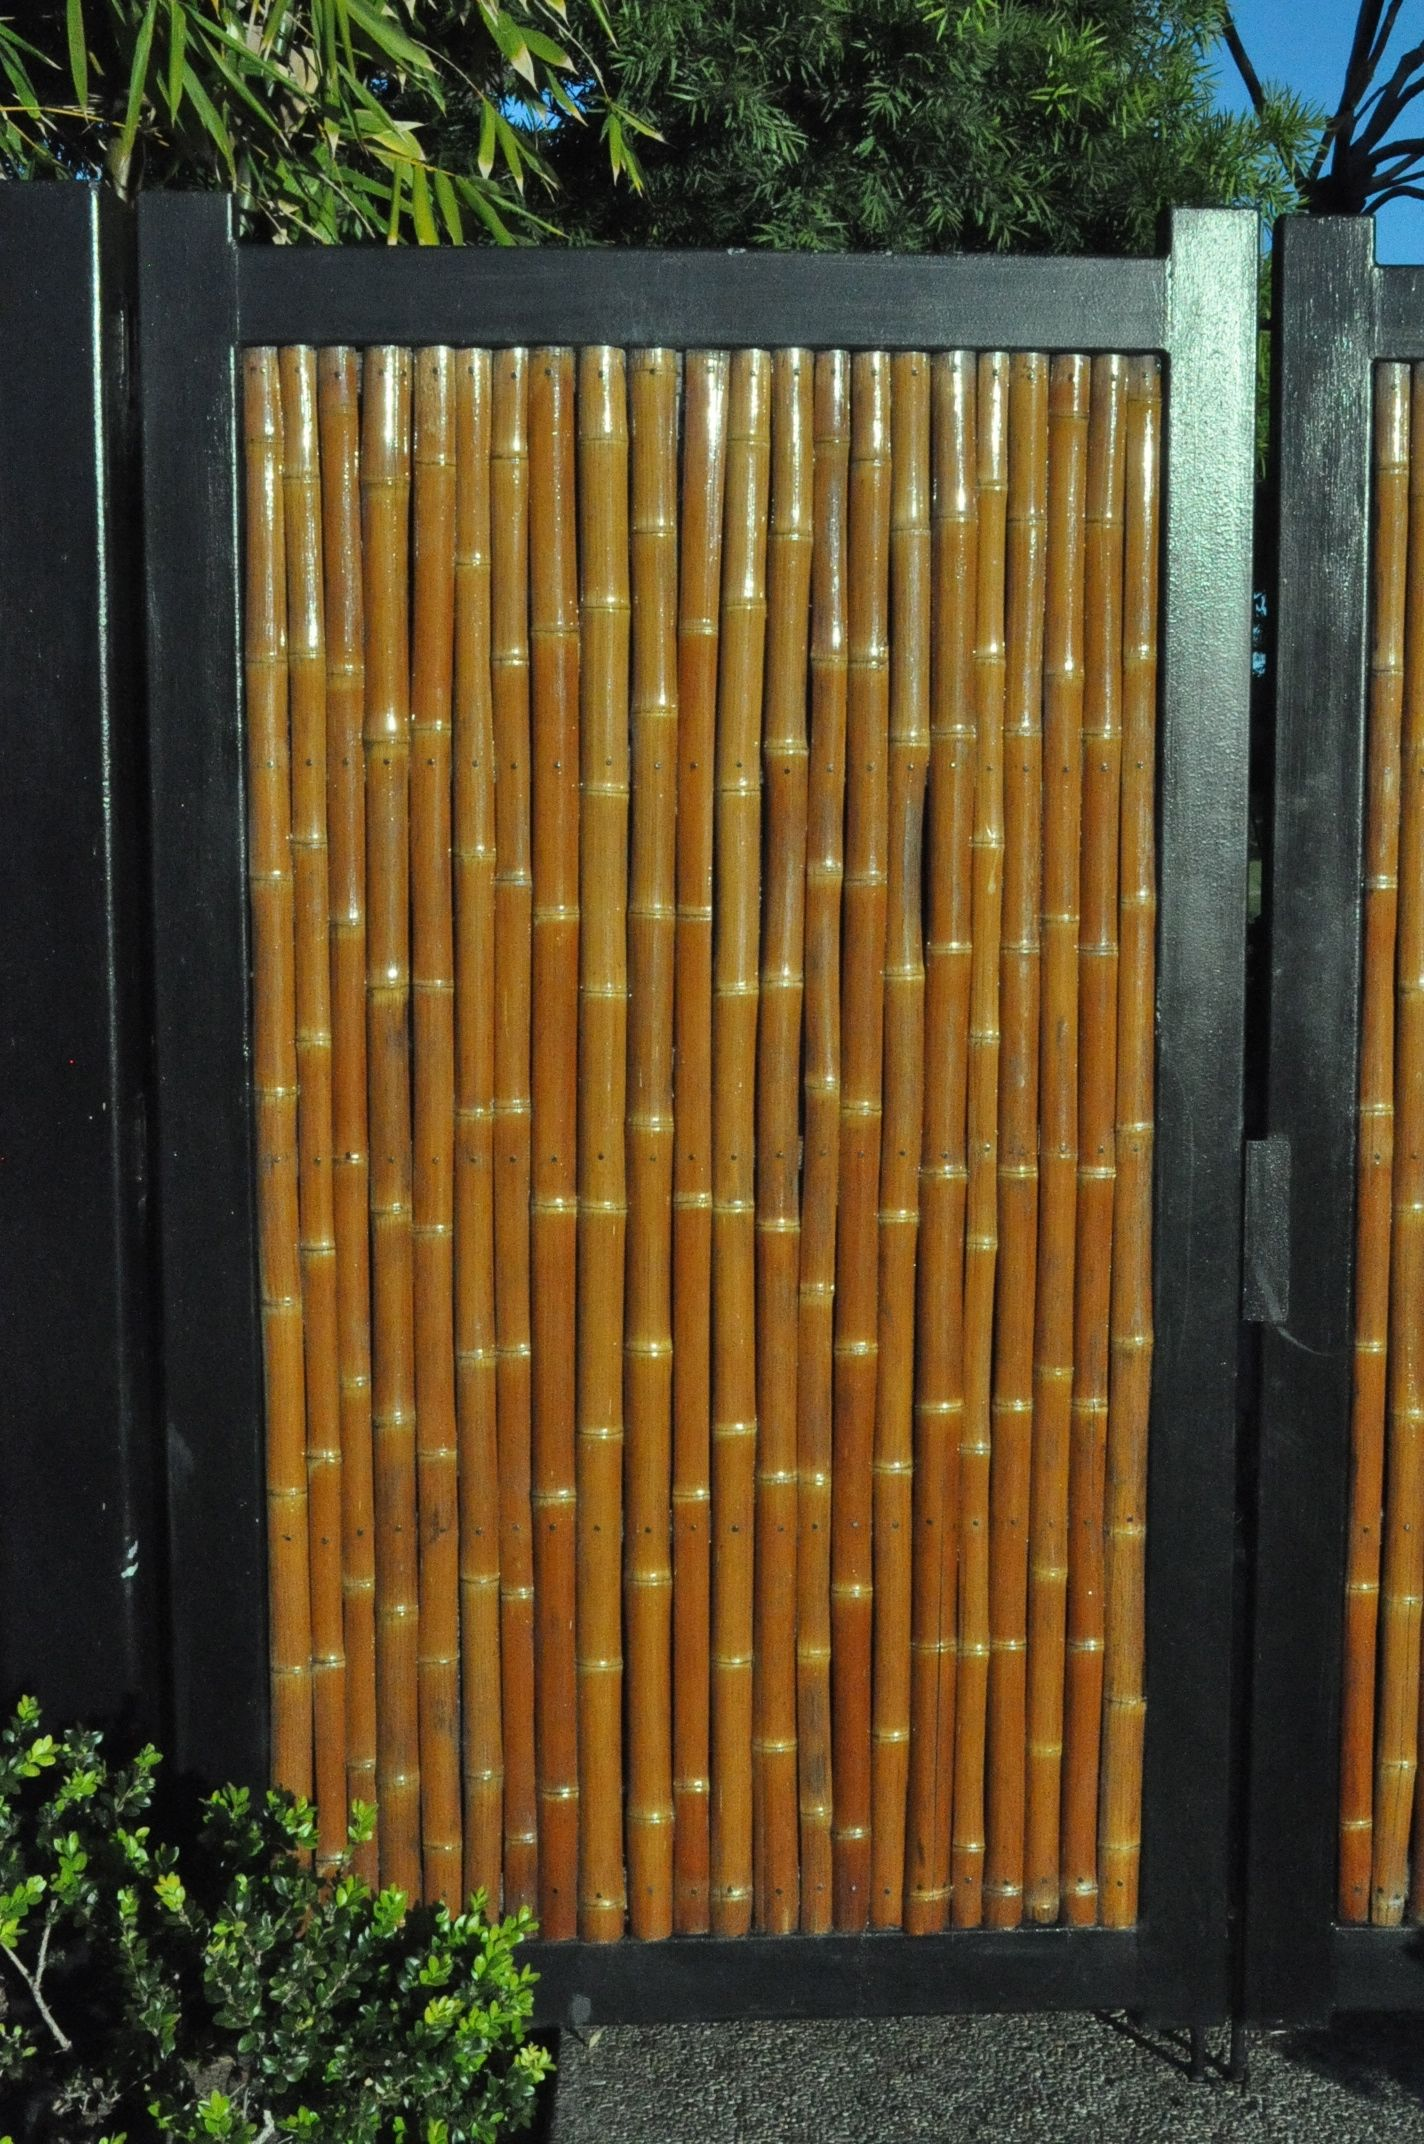 Bamboo Outdoor Shower Enclosures Bamboo Door Garden Diy Project And Etc Pinterest